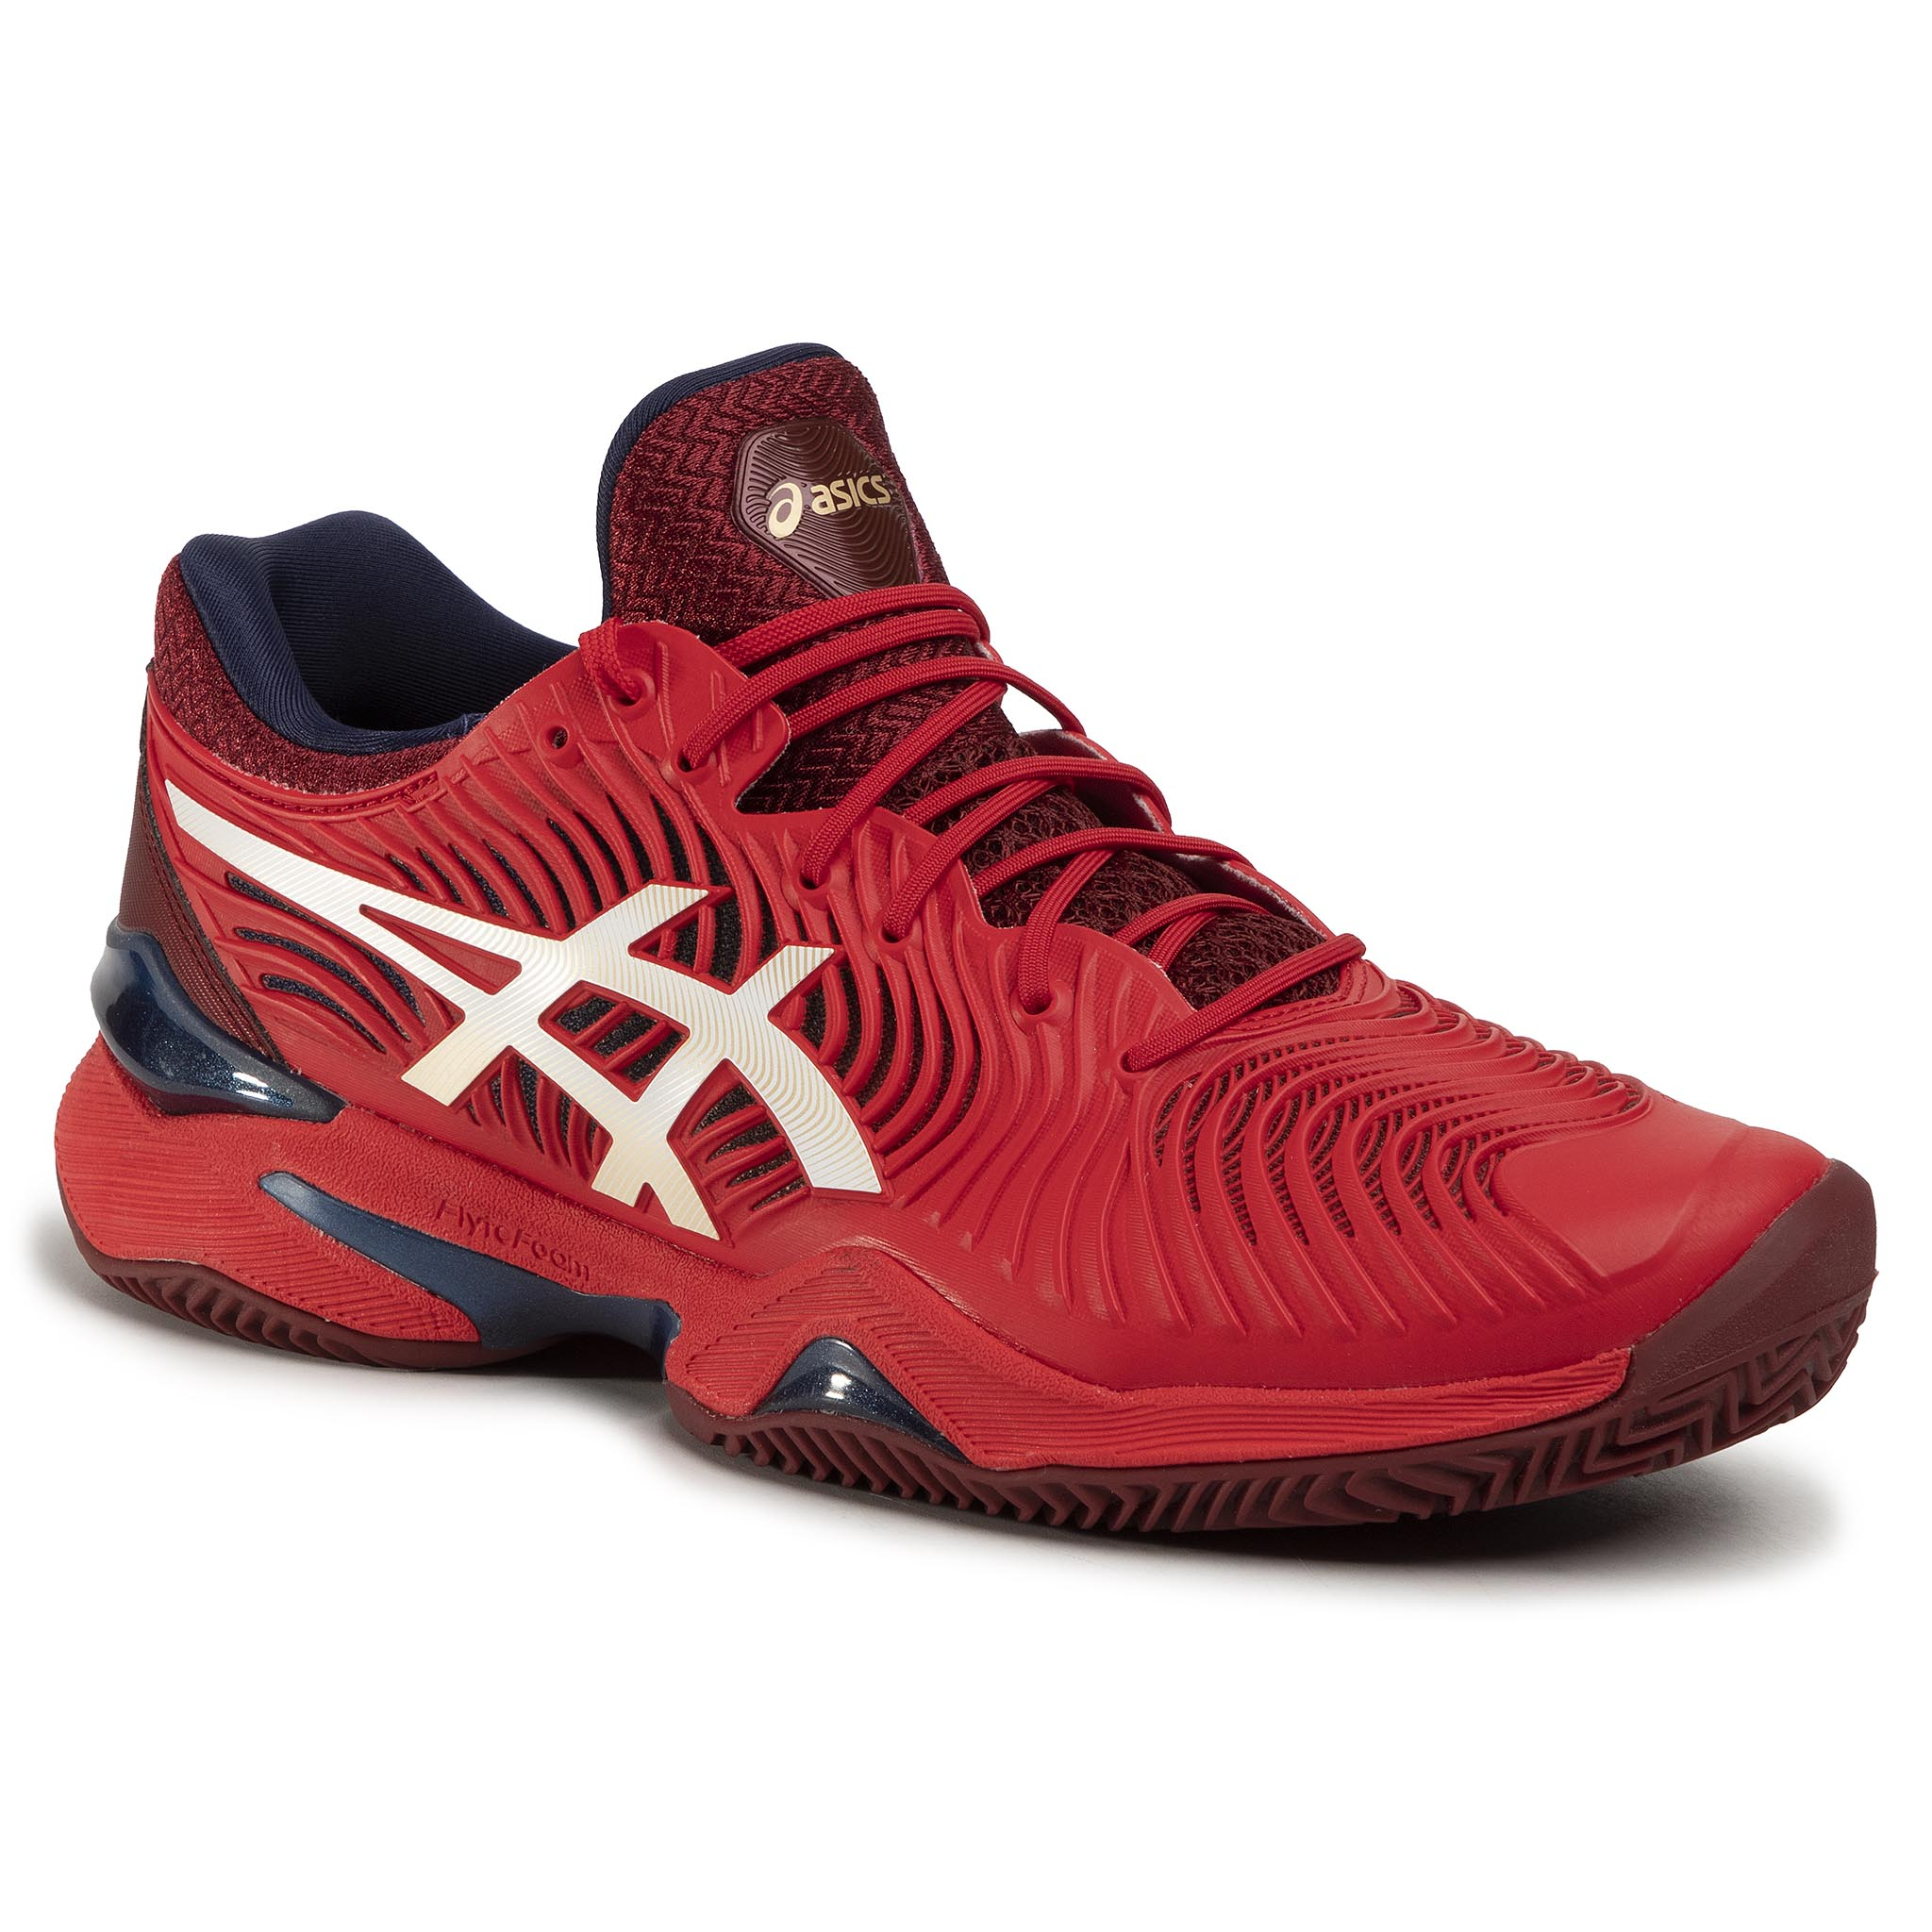 Pantofi Asics - Court Ff 2 Clay 1041a082 Classic Red/White 600 imagine epantofi.ro 2021